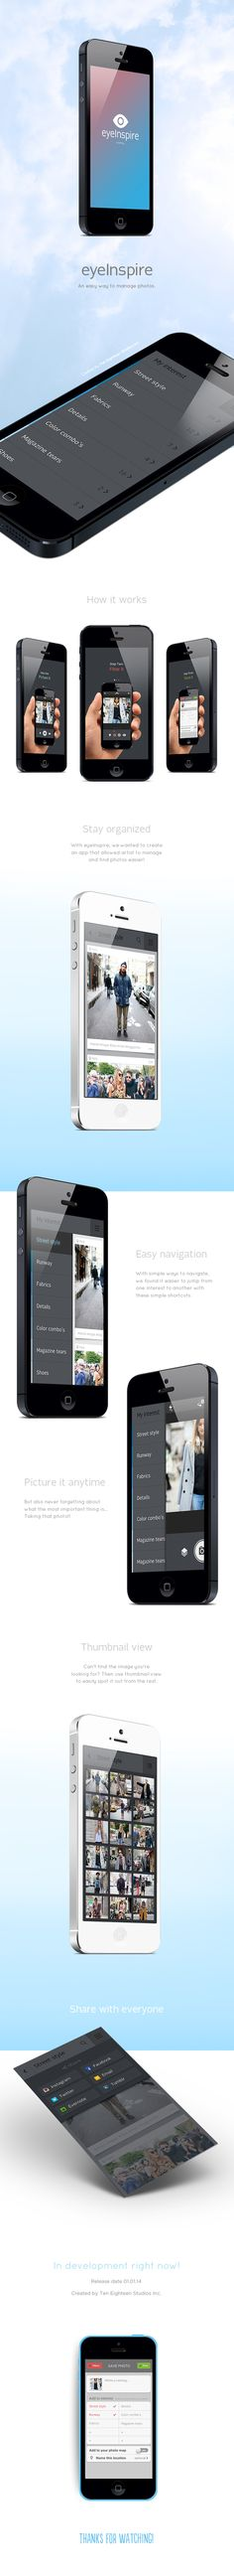 eyeInspire by Joseph Gatto, via Behance